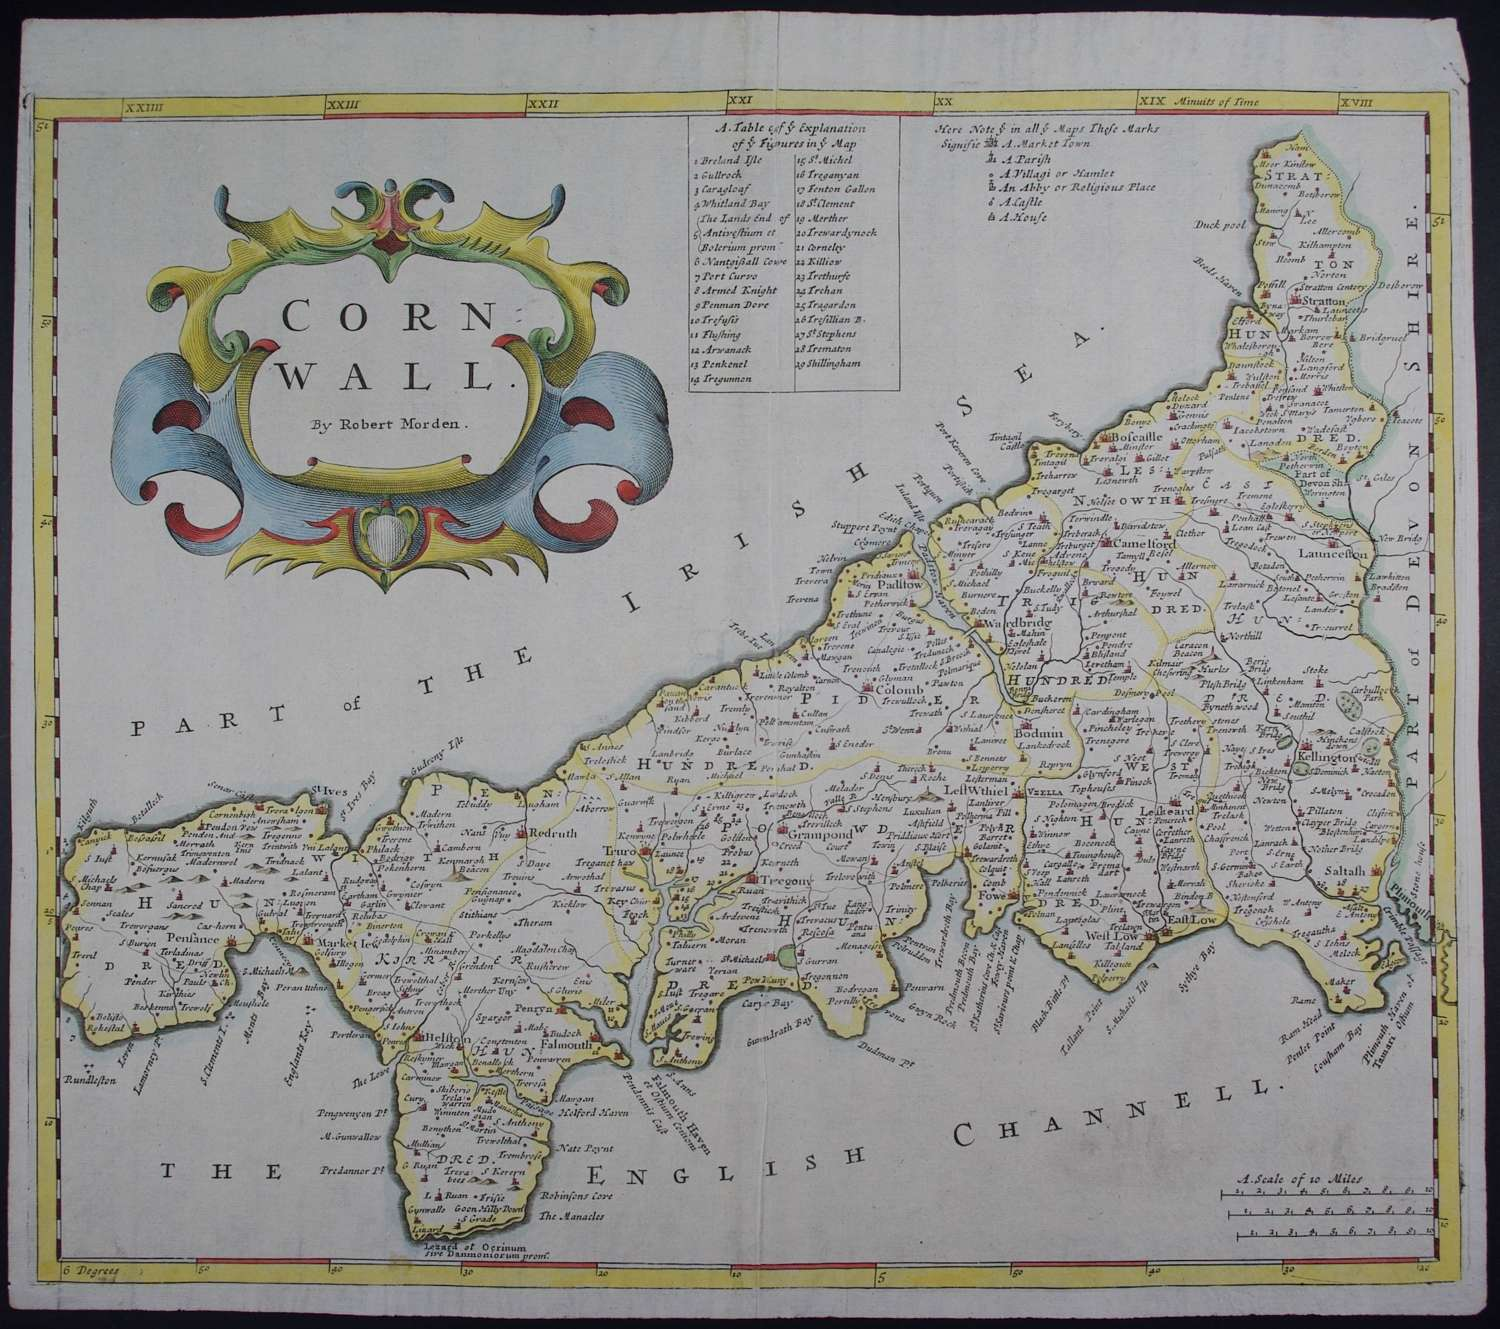 Cornwall. 1st edition 1695 by Robert Morden